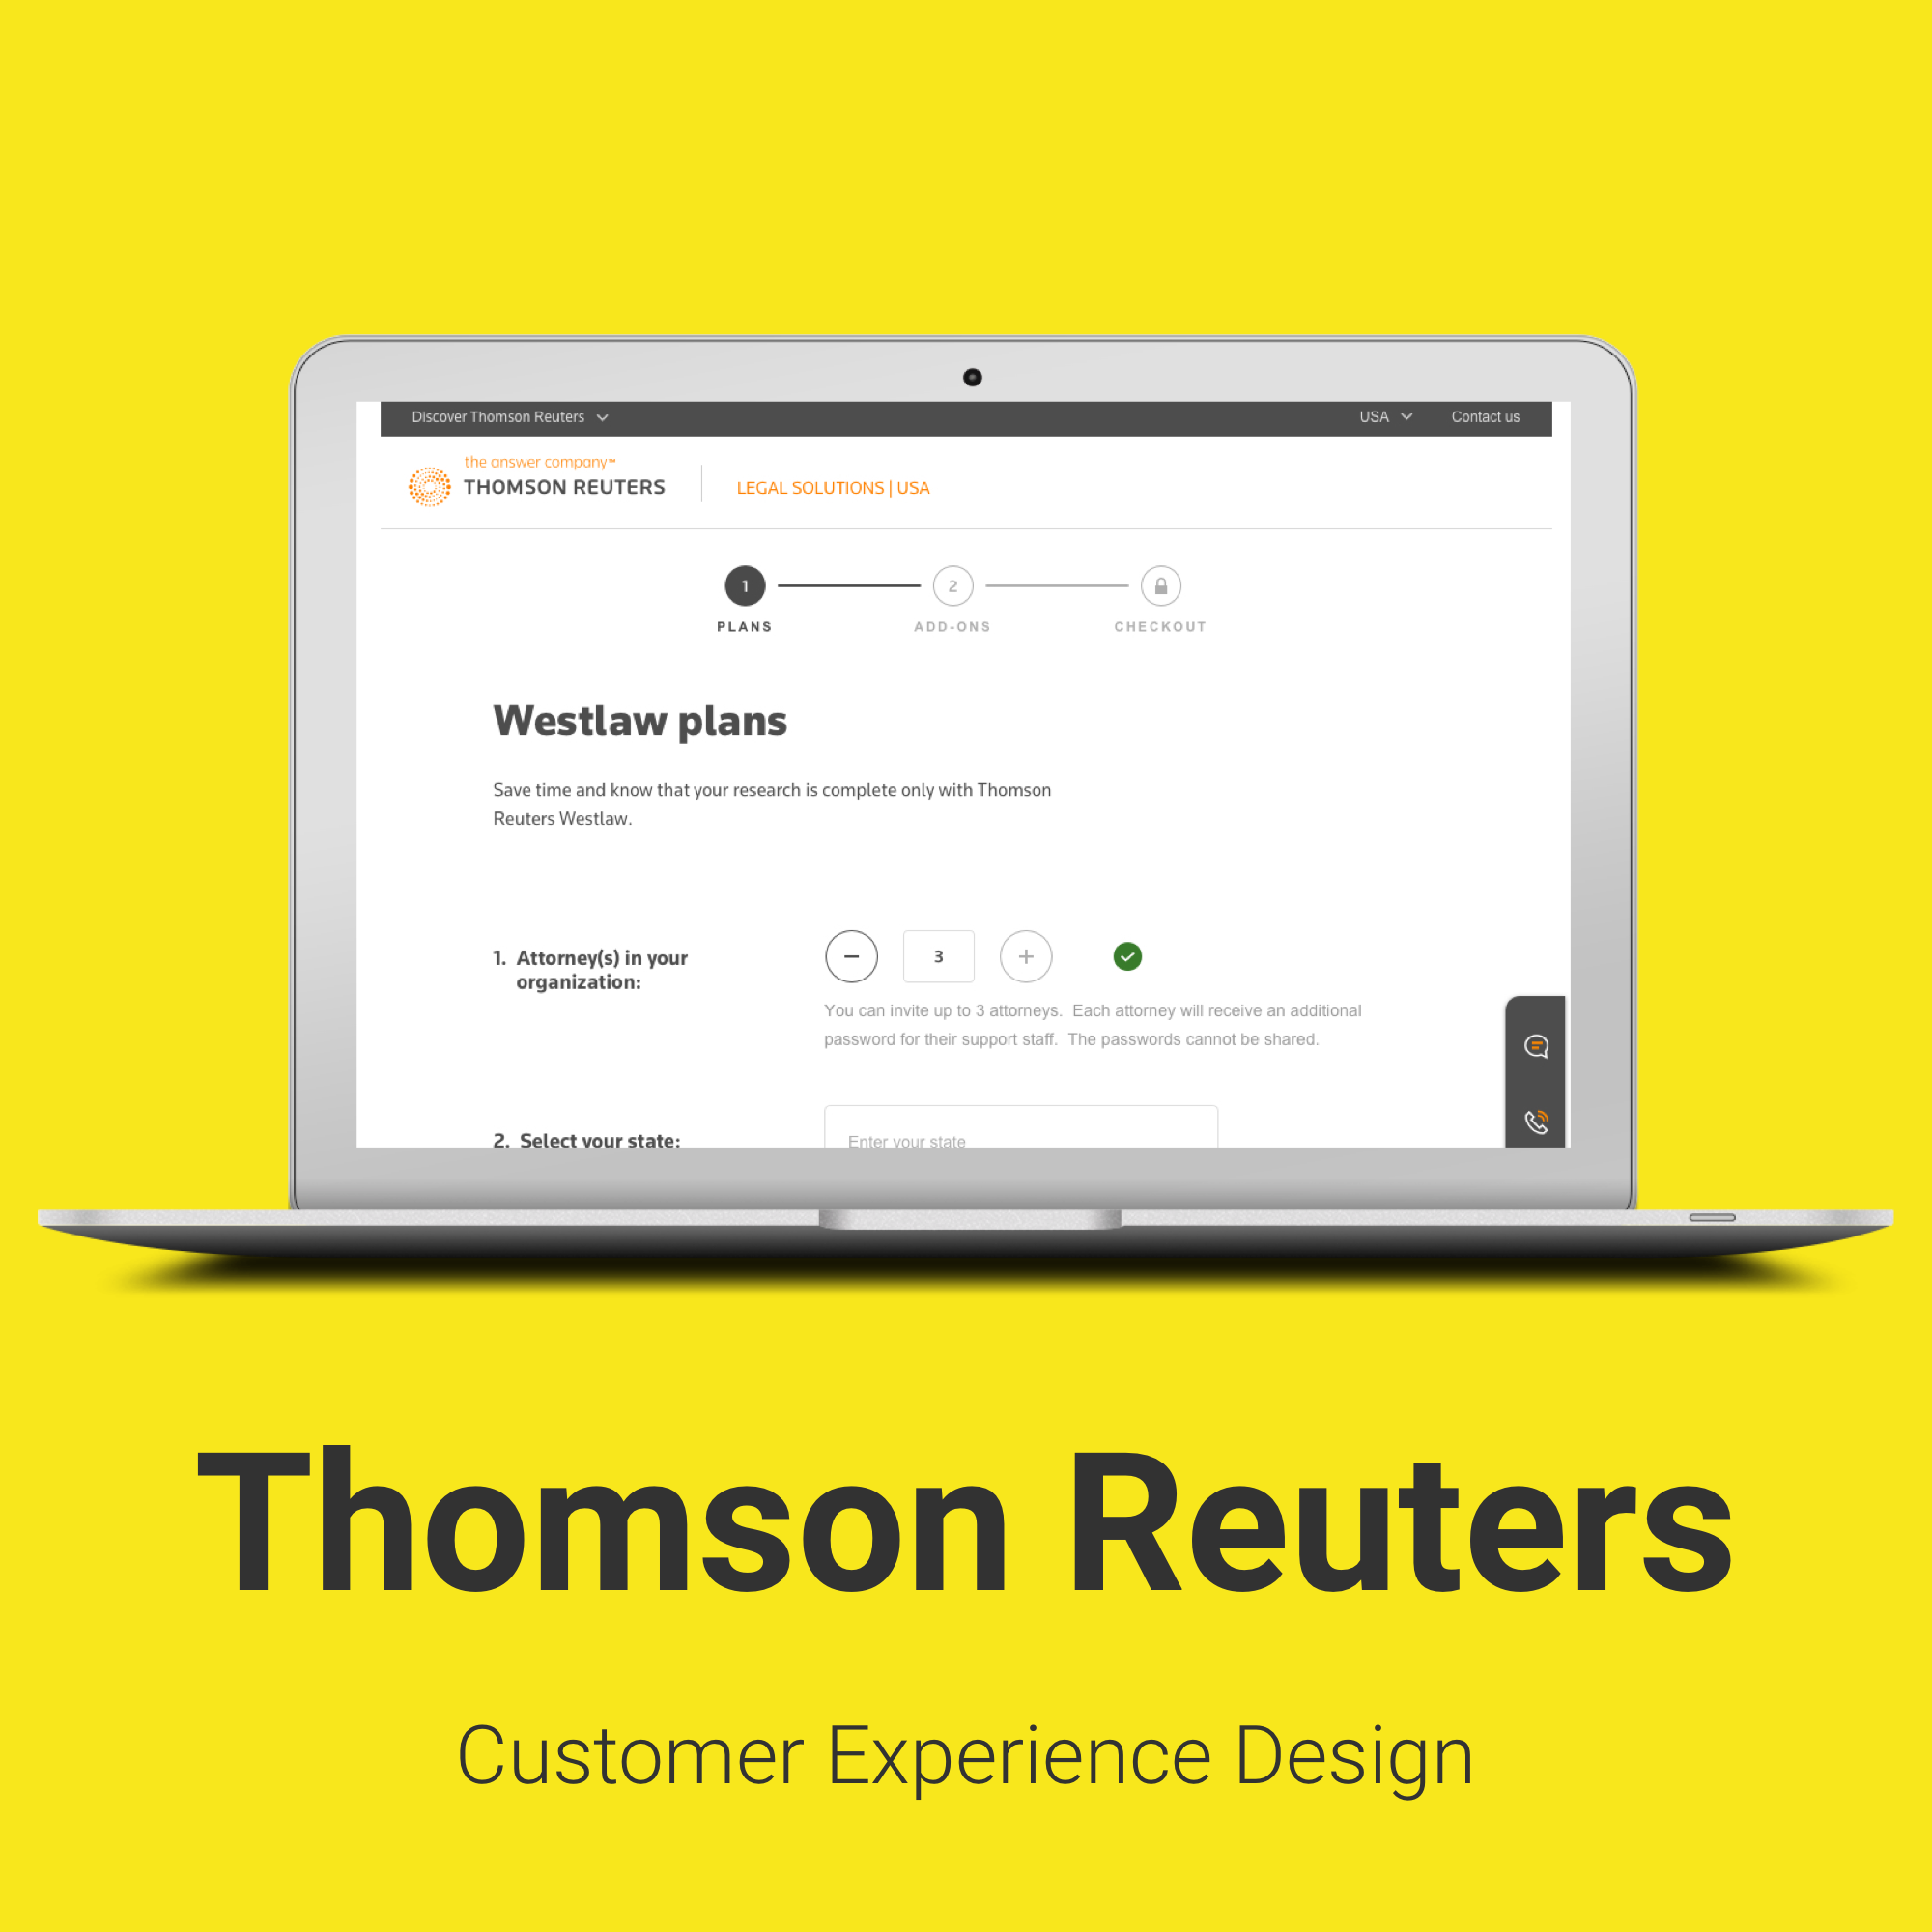 Thomson reuters customer experience design - button.png